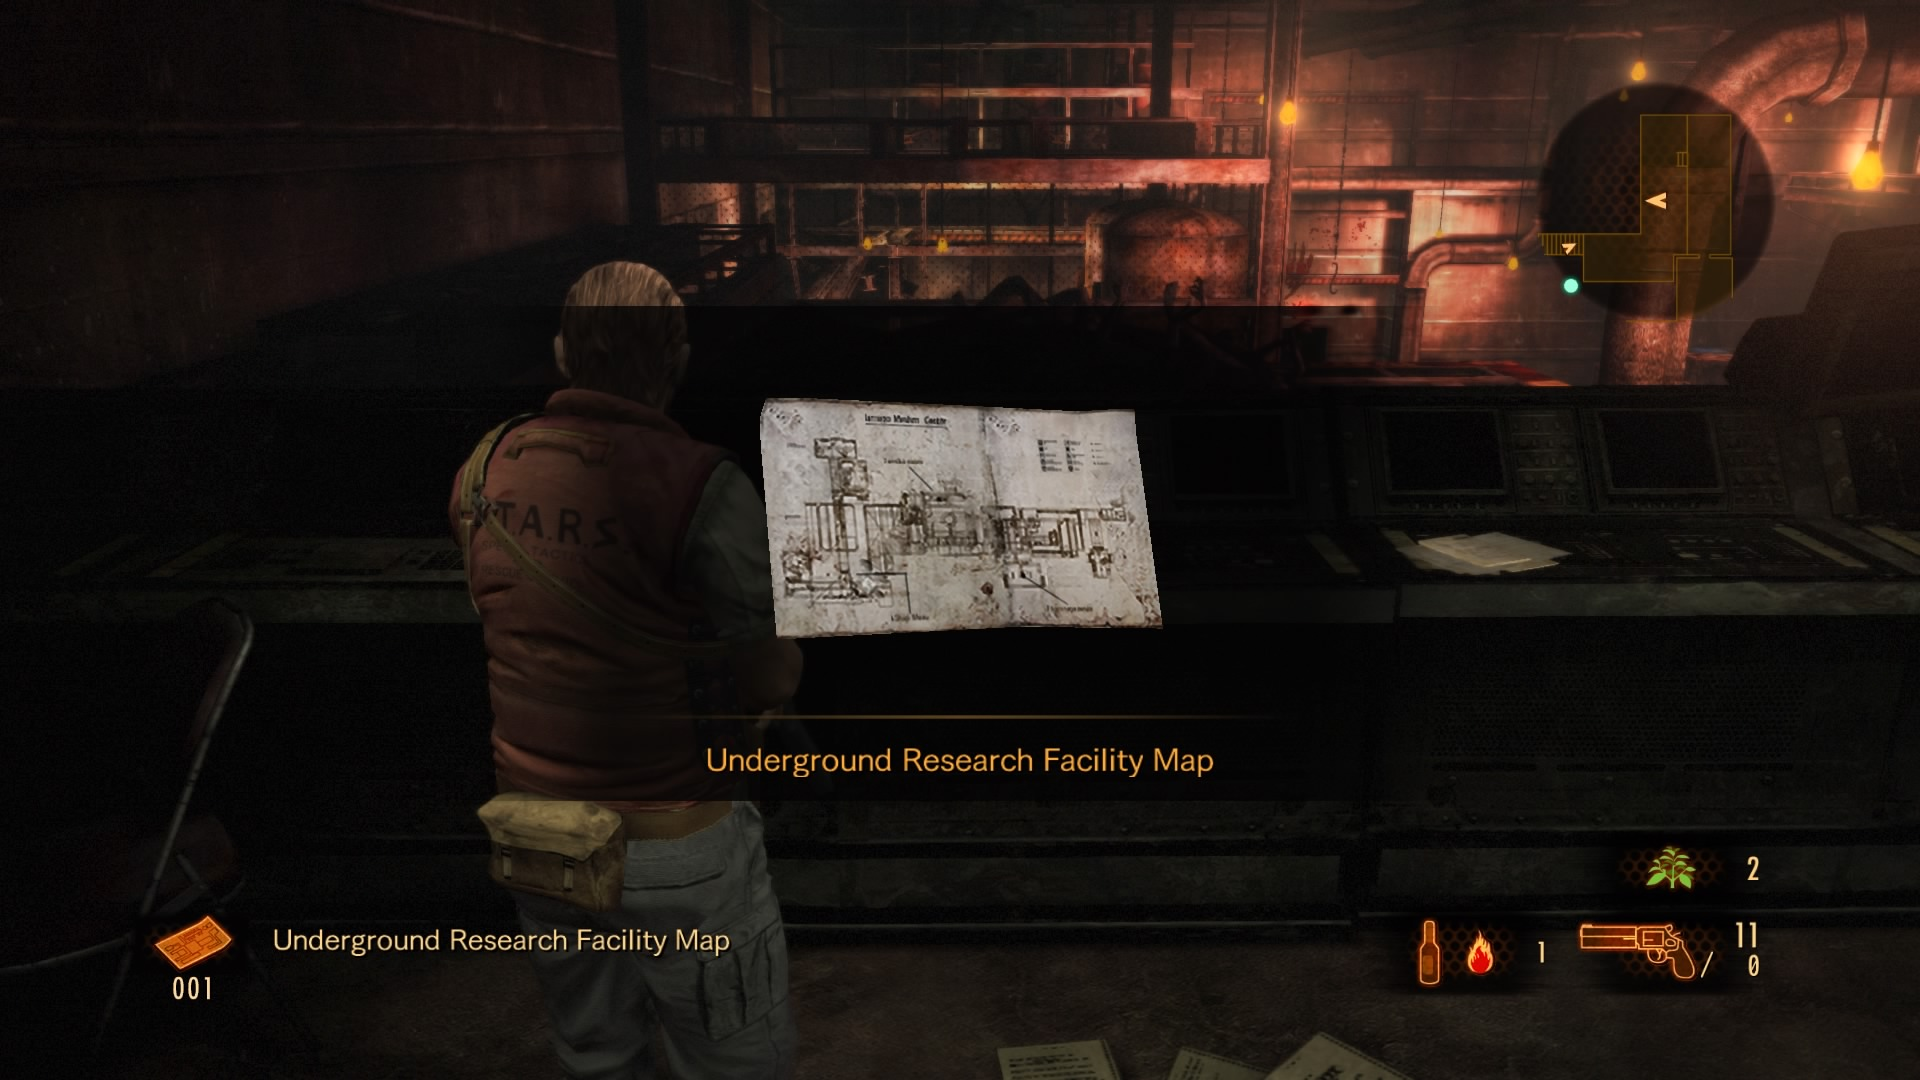 Resident Evil Umbrella Chrnicles Subway Map 3d Model.Underground Research Facility Map Resident Evil Wiki Fandom